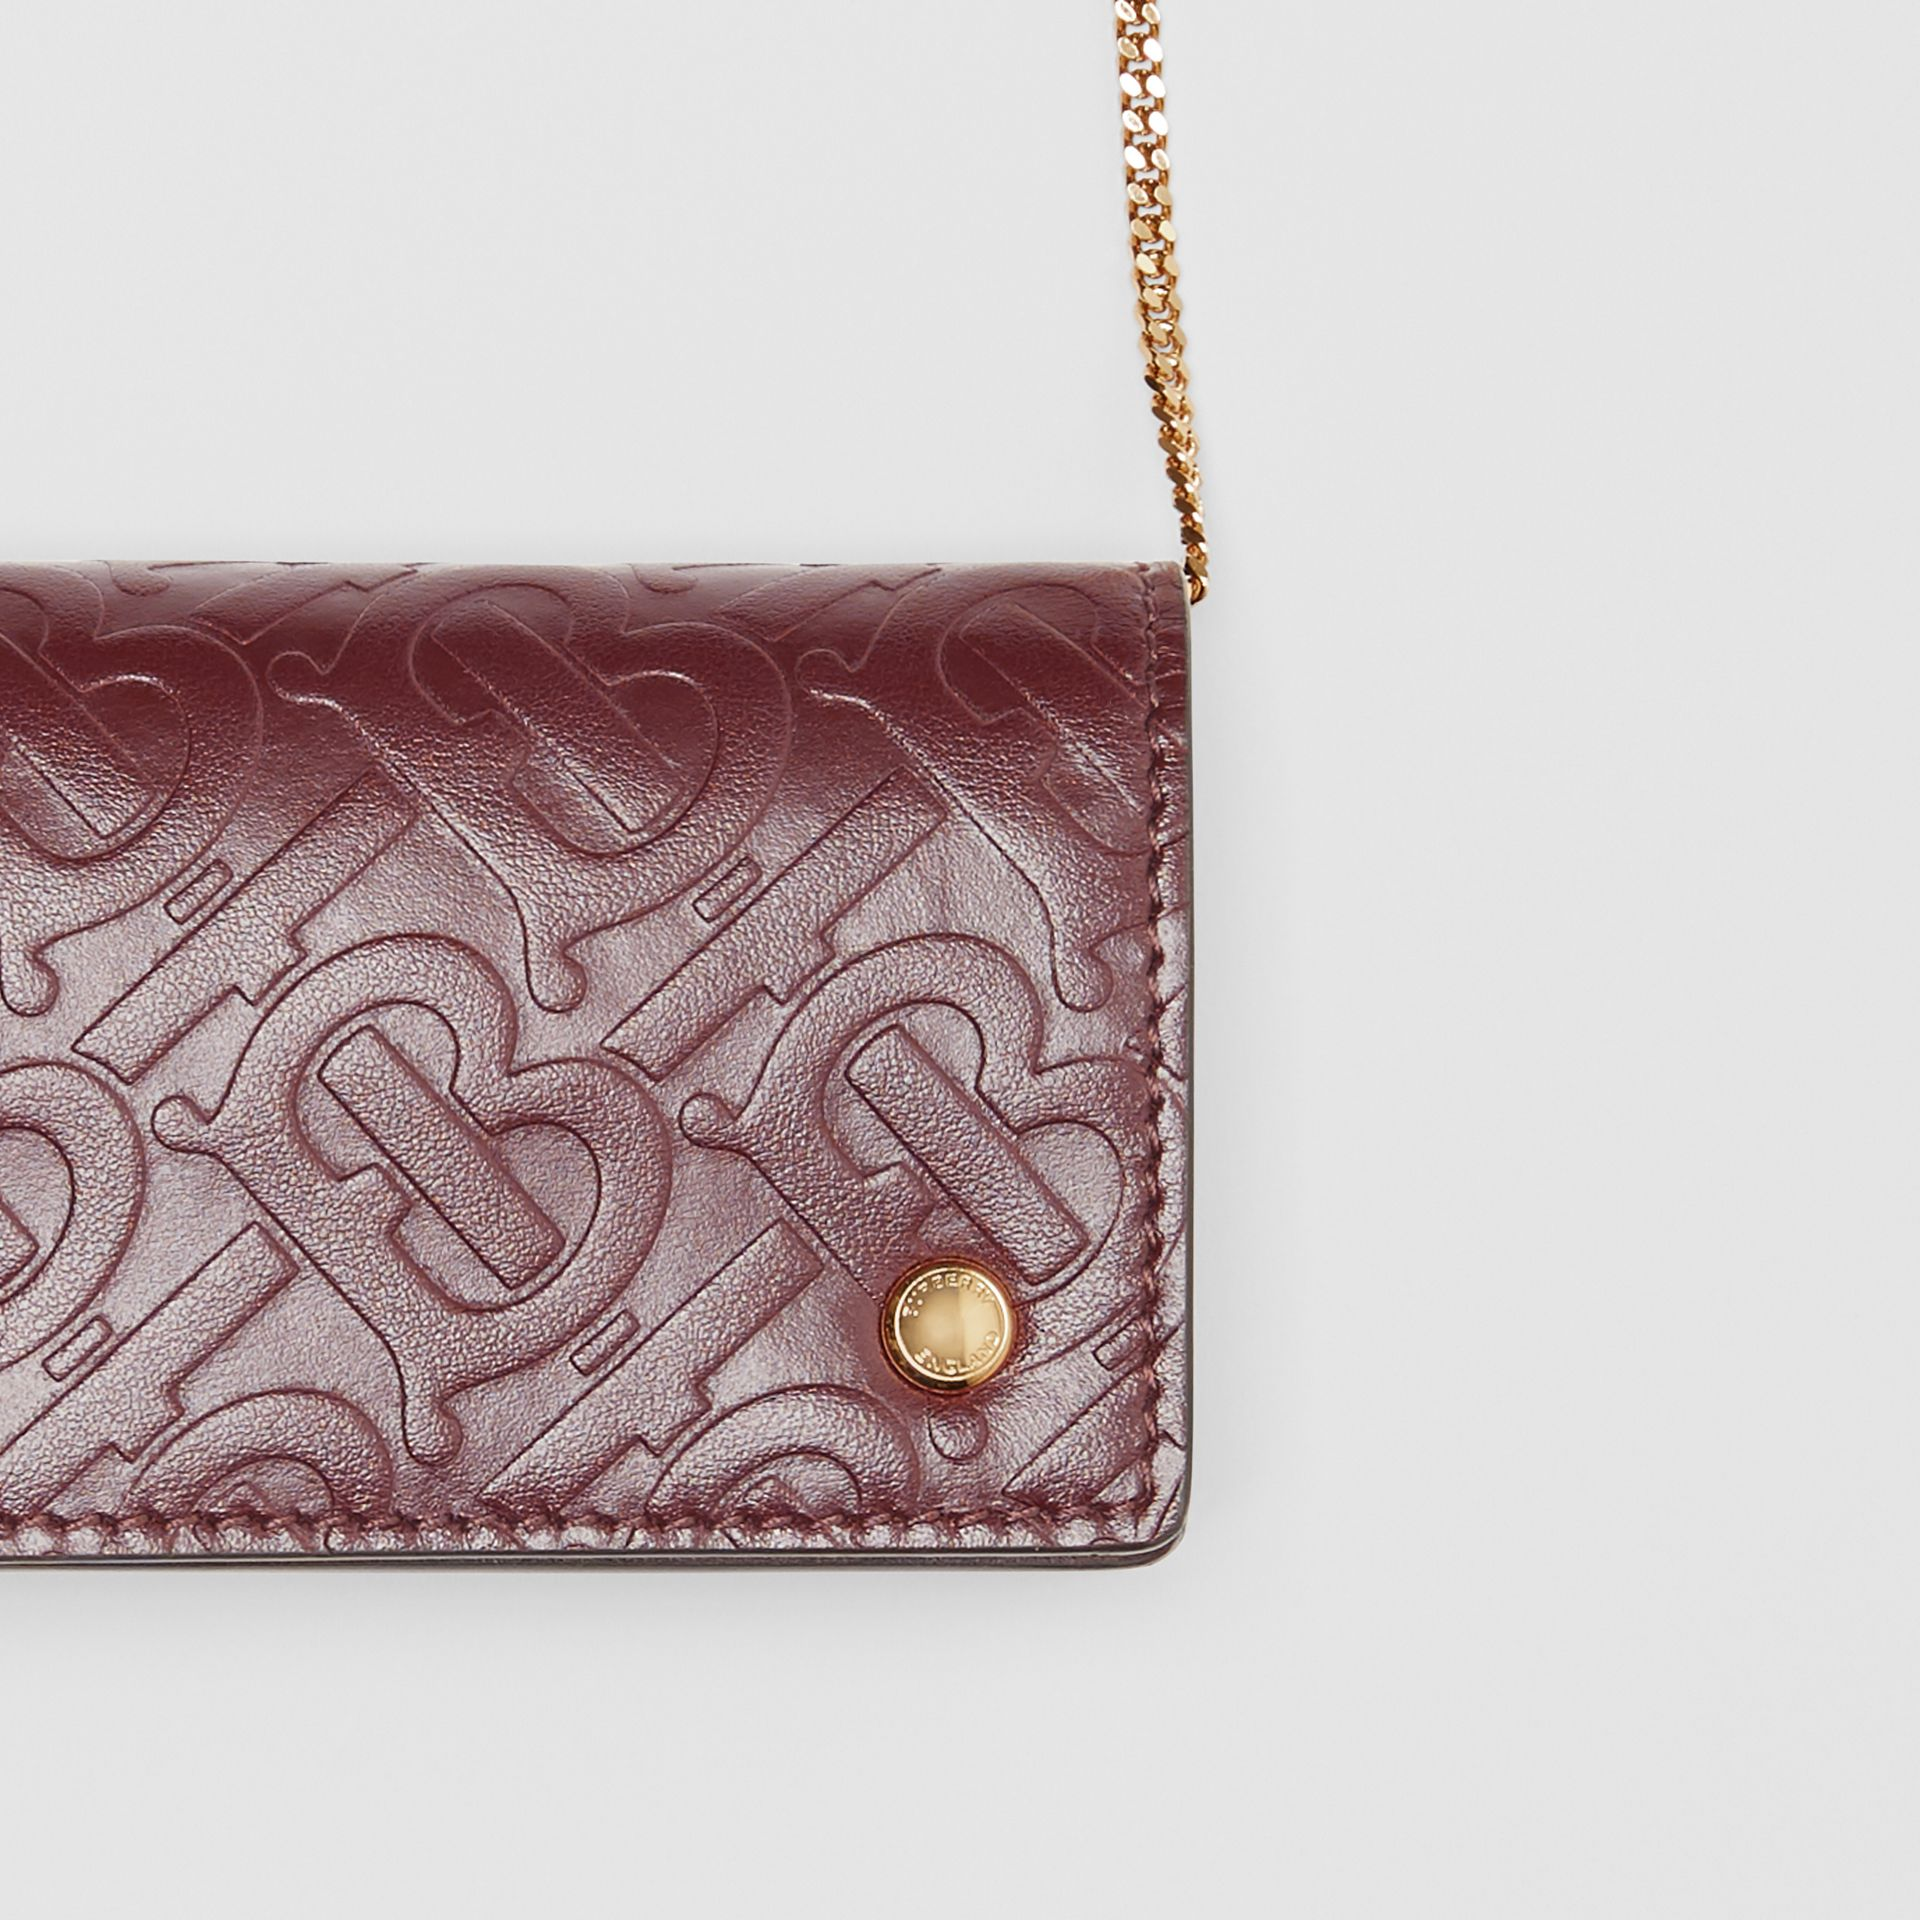 Monogram Leather Card Case with Detachable Strap in Oxblood - Women | Burberry - gallery image 1